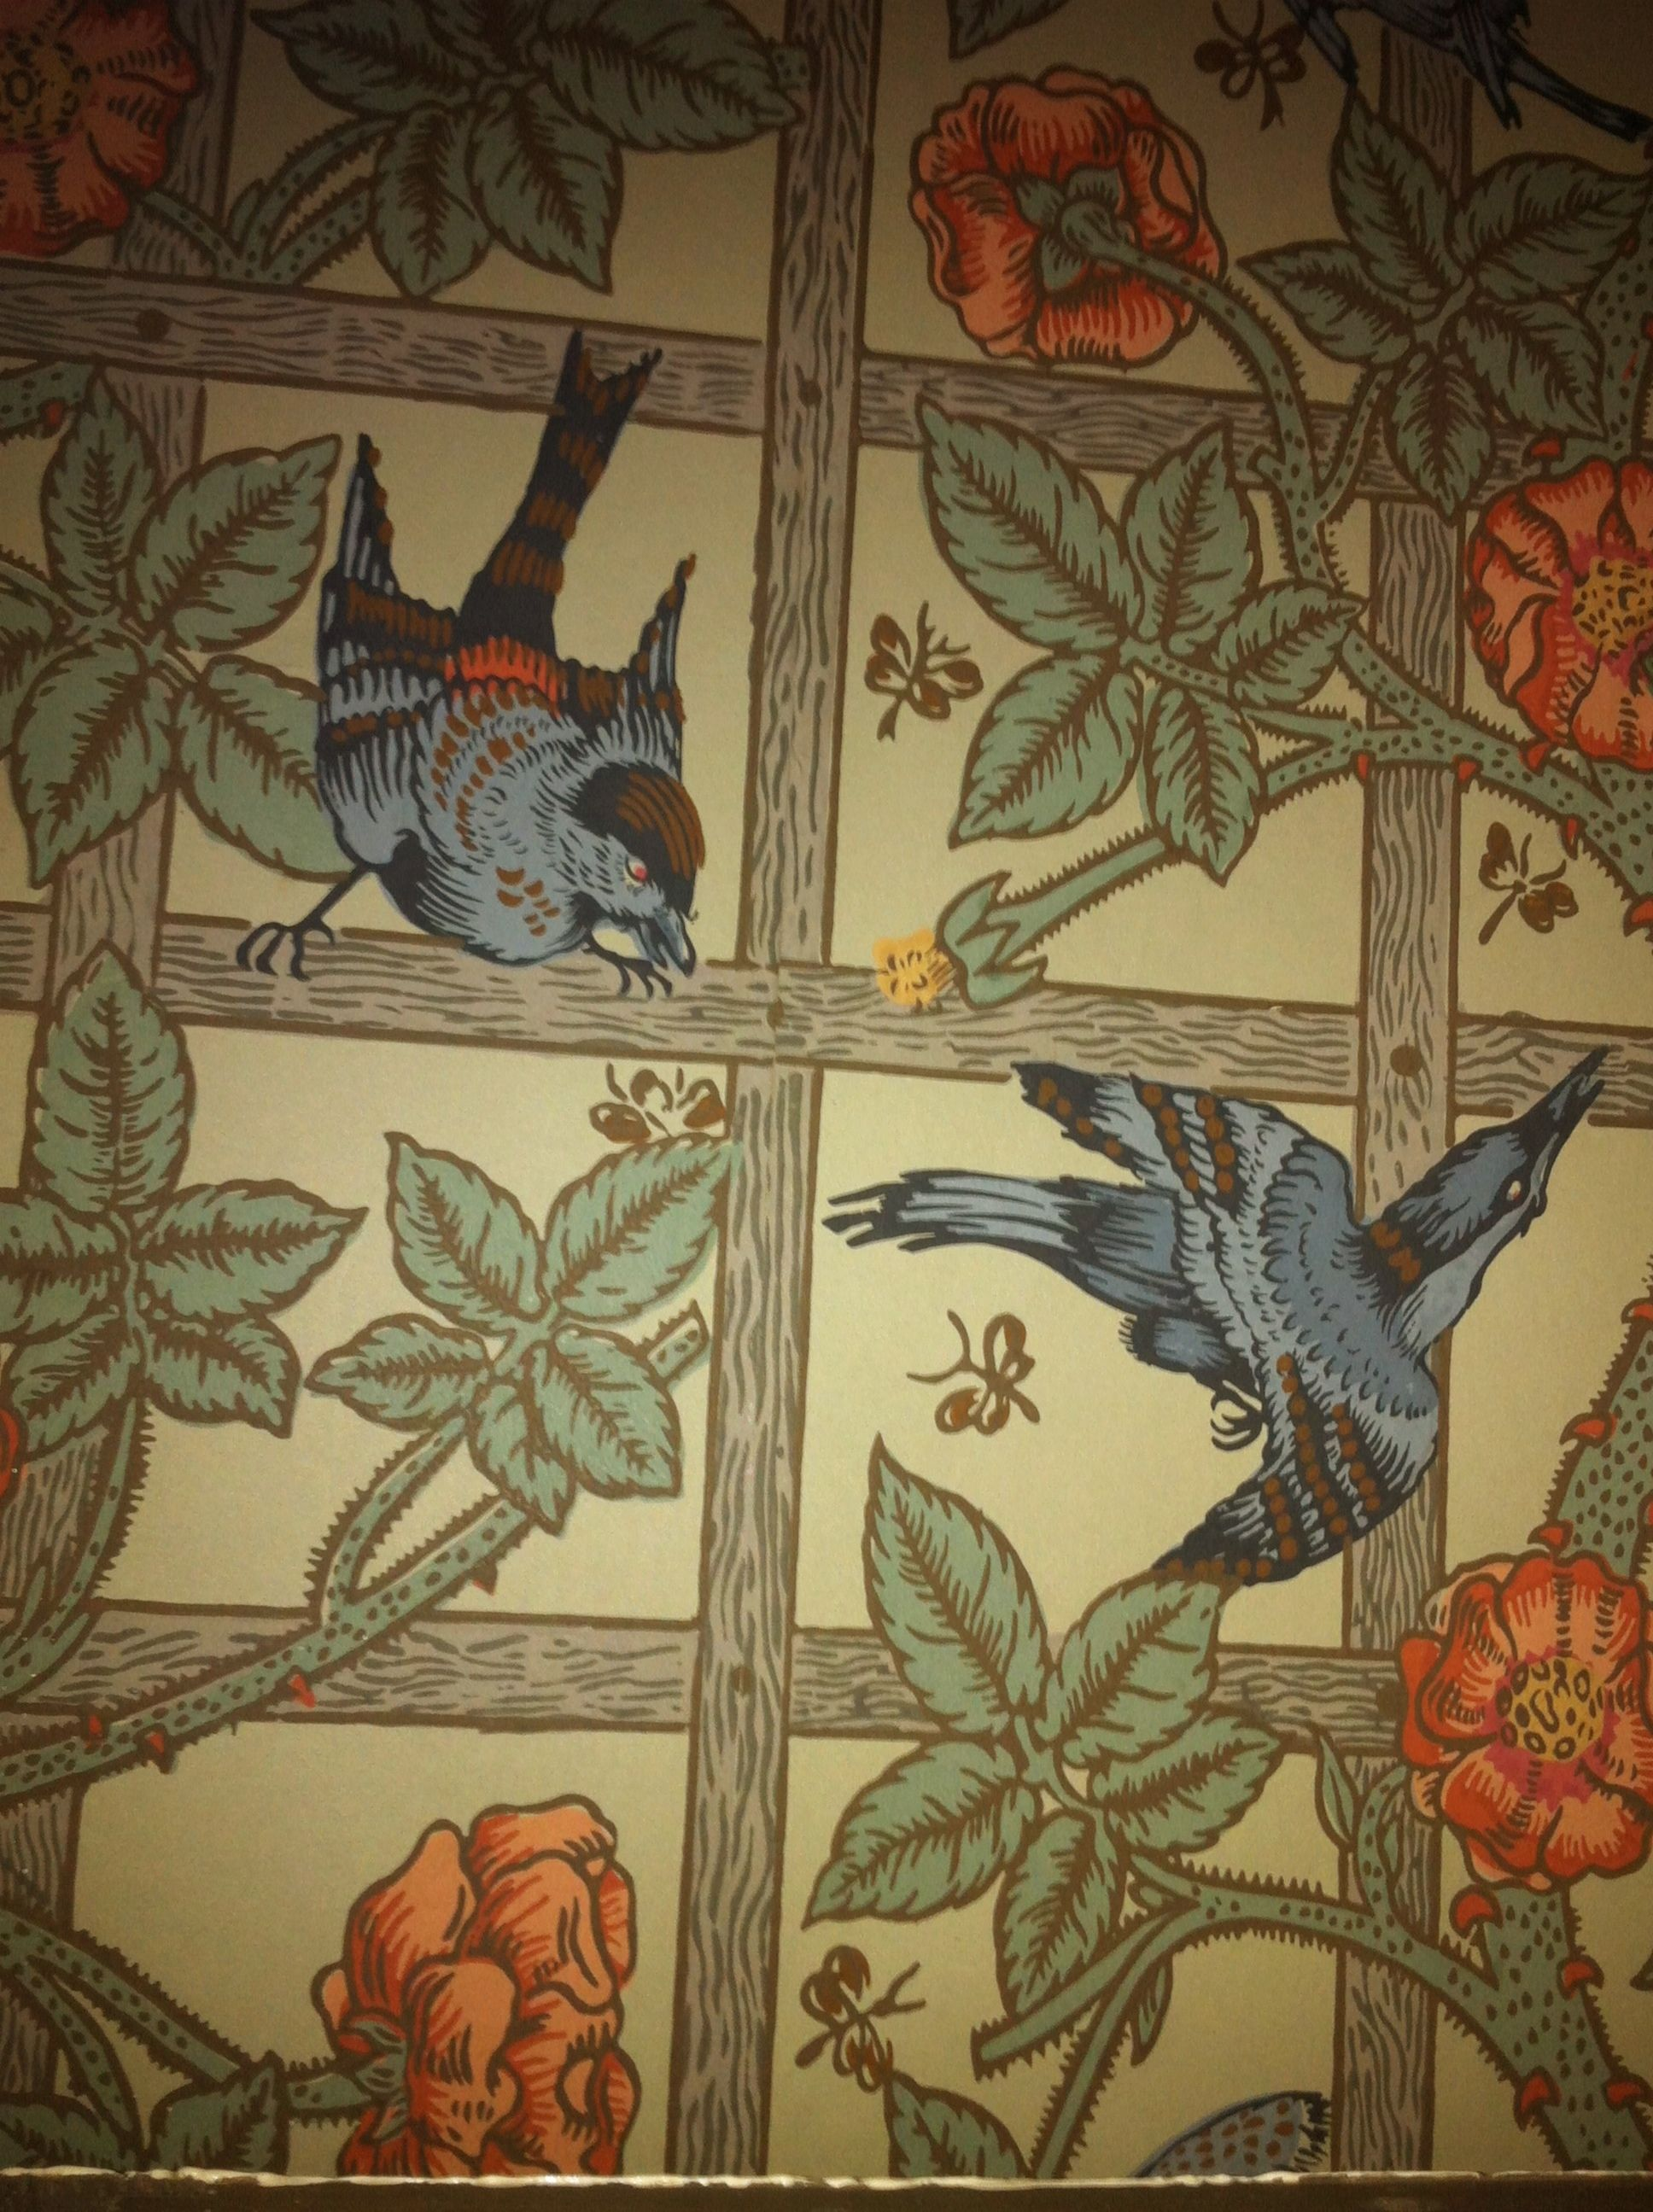 Arts and crafts movement design - Cragside 1863 Arts And Crafts Movement